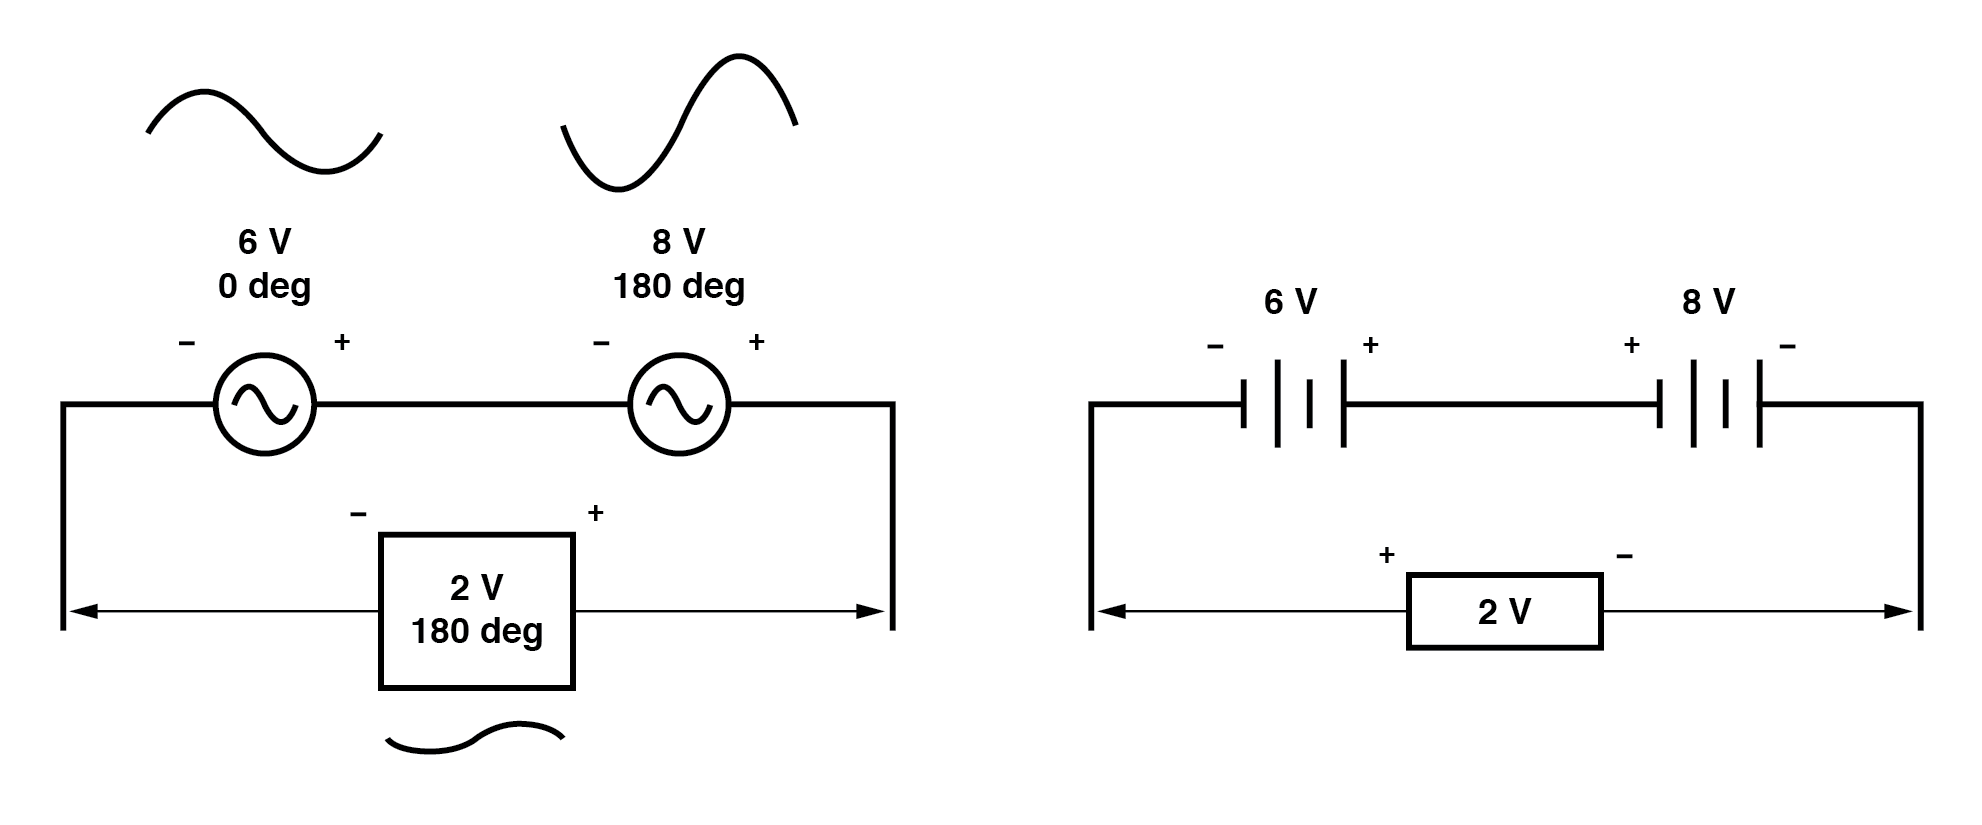 Opposing AC voltages subtract like opposing battery voltages.